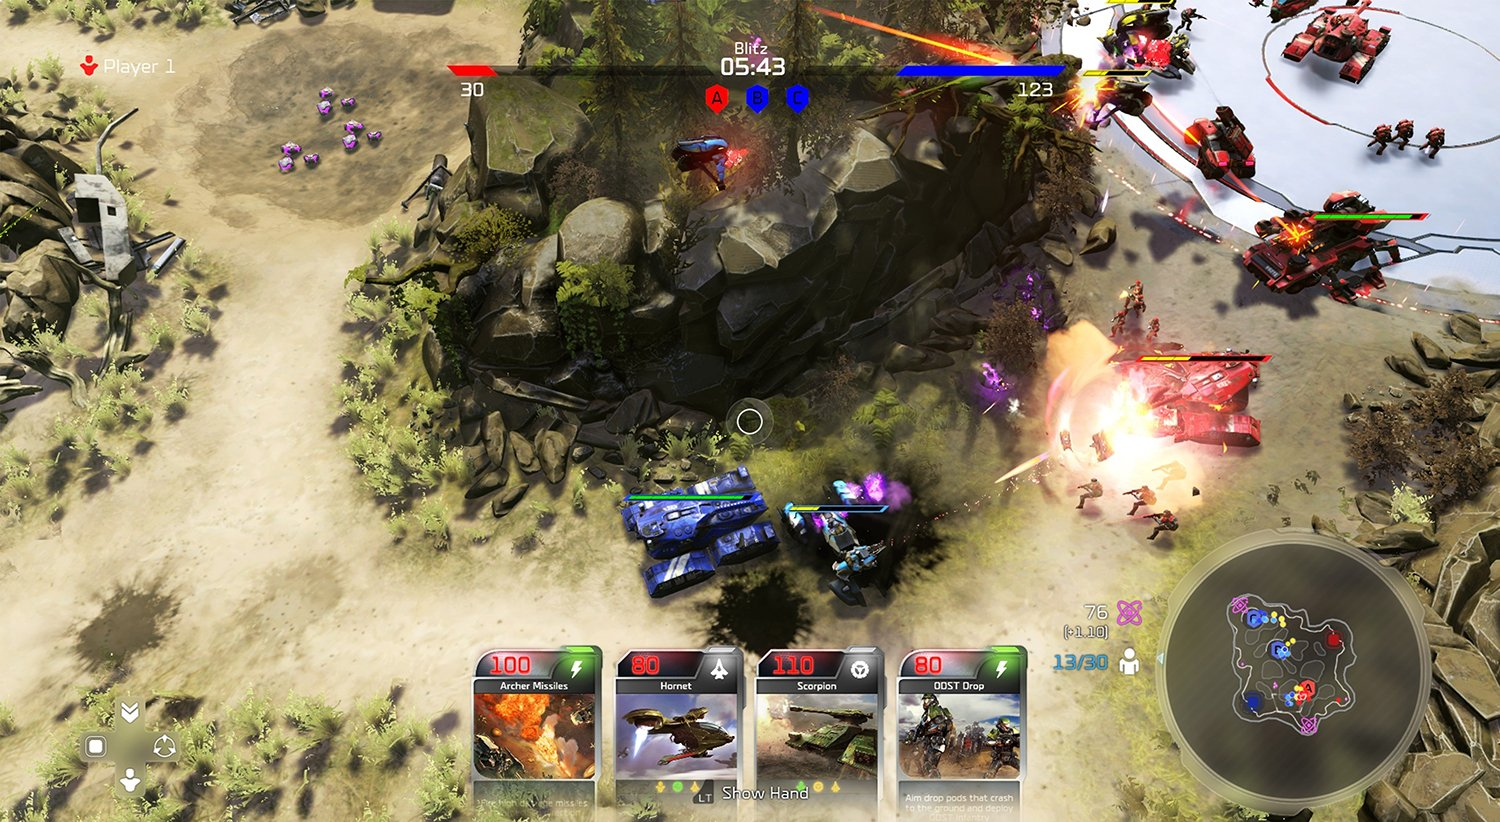 Best Strategy and Simulation Games on Xbox One   Windows Central Halo Wars 2 is easily the best real time strategy game on Xbox One  if for  no reason other than the under representation available on the console